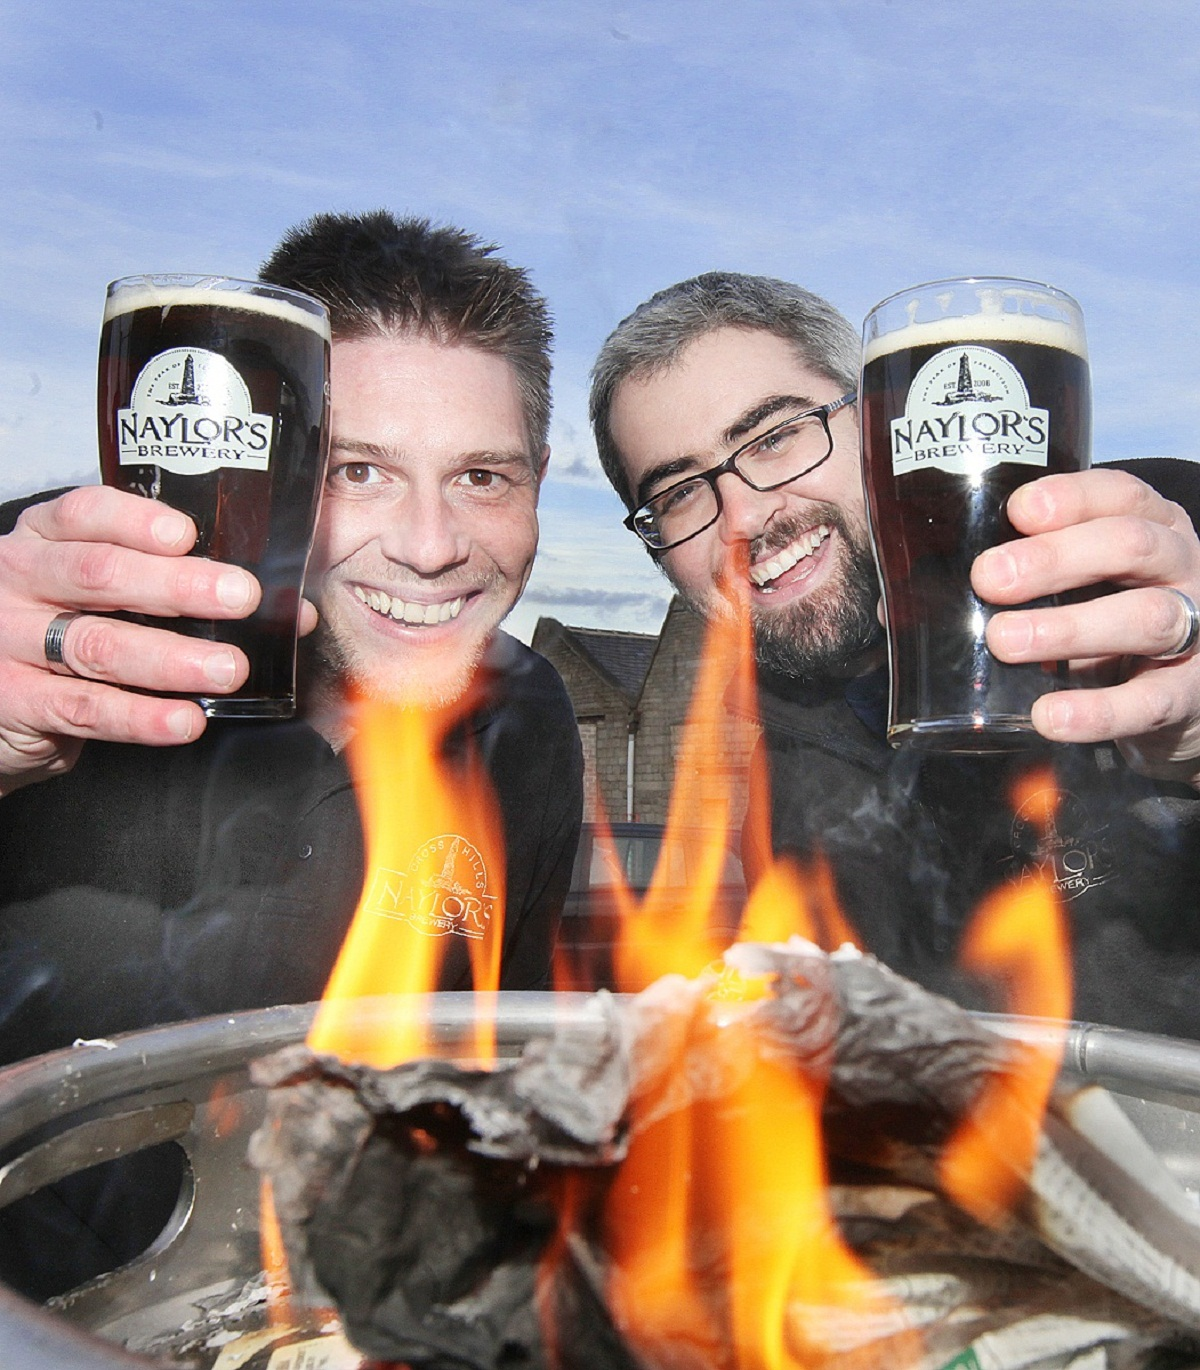 Sales director, Michael Wilkinson, and owner, Robert Naylor, at the launch of Naylor's Brewery's new smoked beer, called Twisted Kour